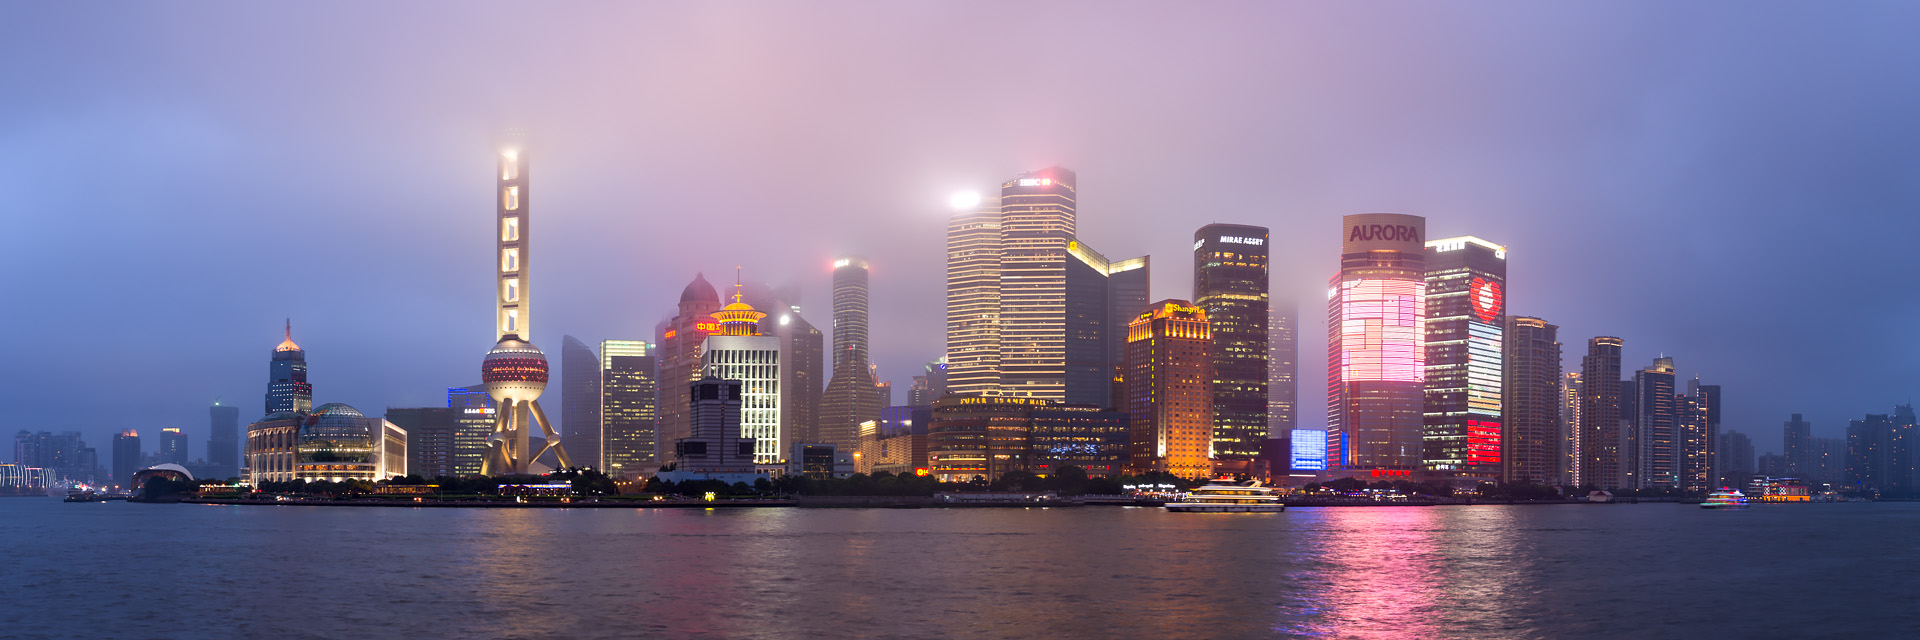 Pudong District over Huangpu River, Shanghai, China © David Briard